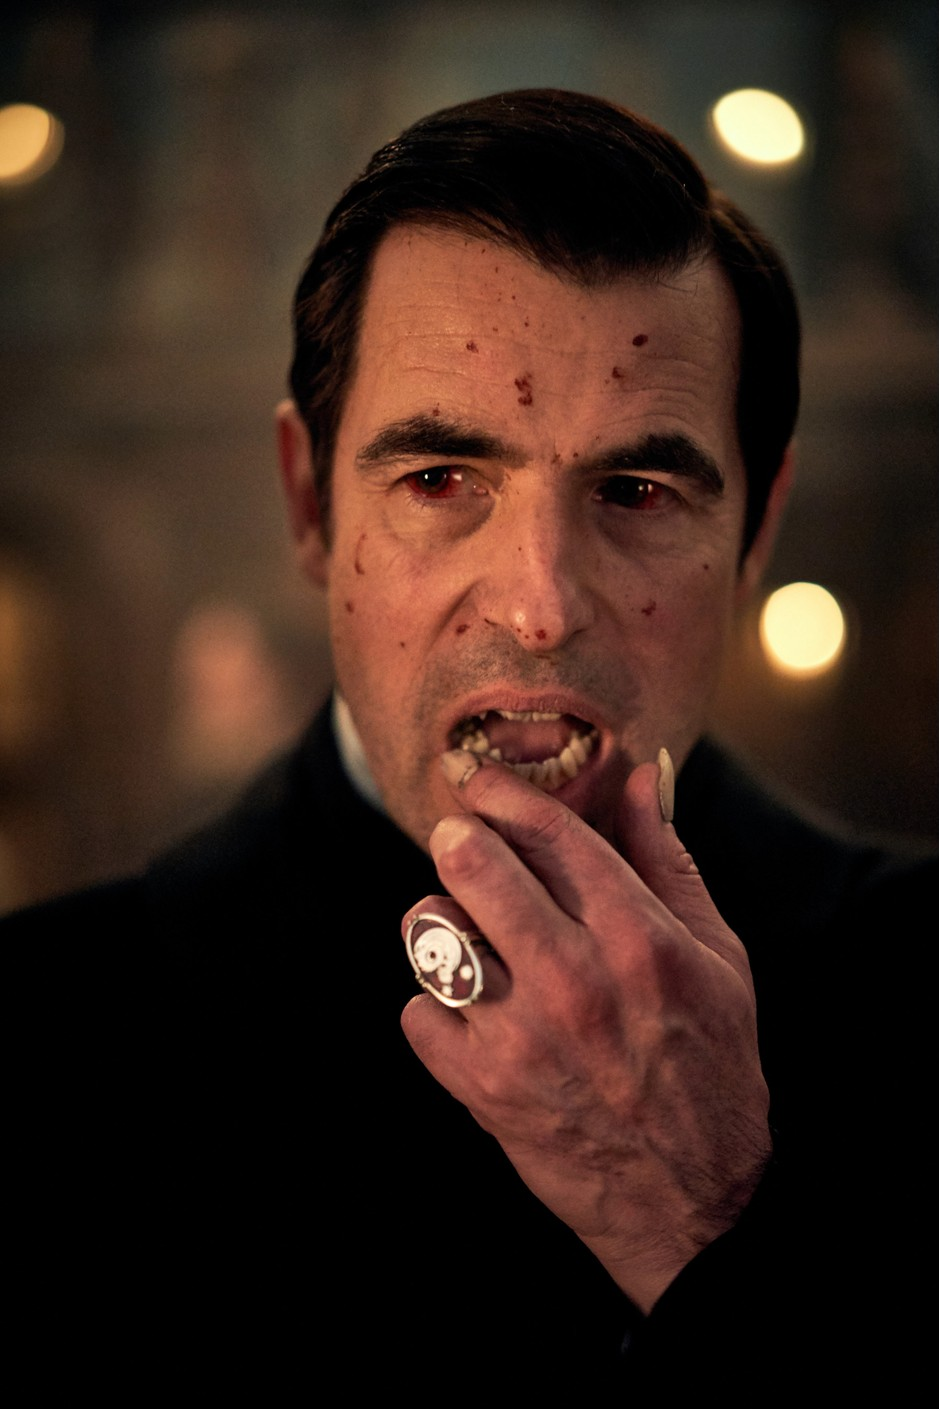 Embargoed-until-0001am-Thurs-4-July-UK-time-Claes-Bang-as-Dracula-001--e3c561c.jpg?quality=90&lb=940,1409&background=white